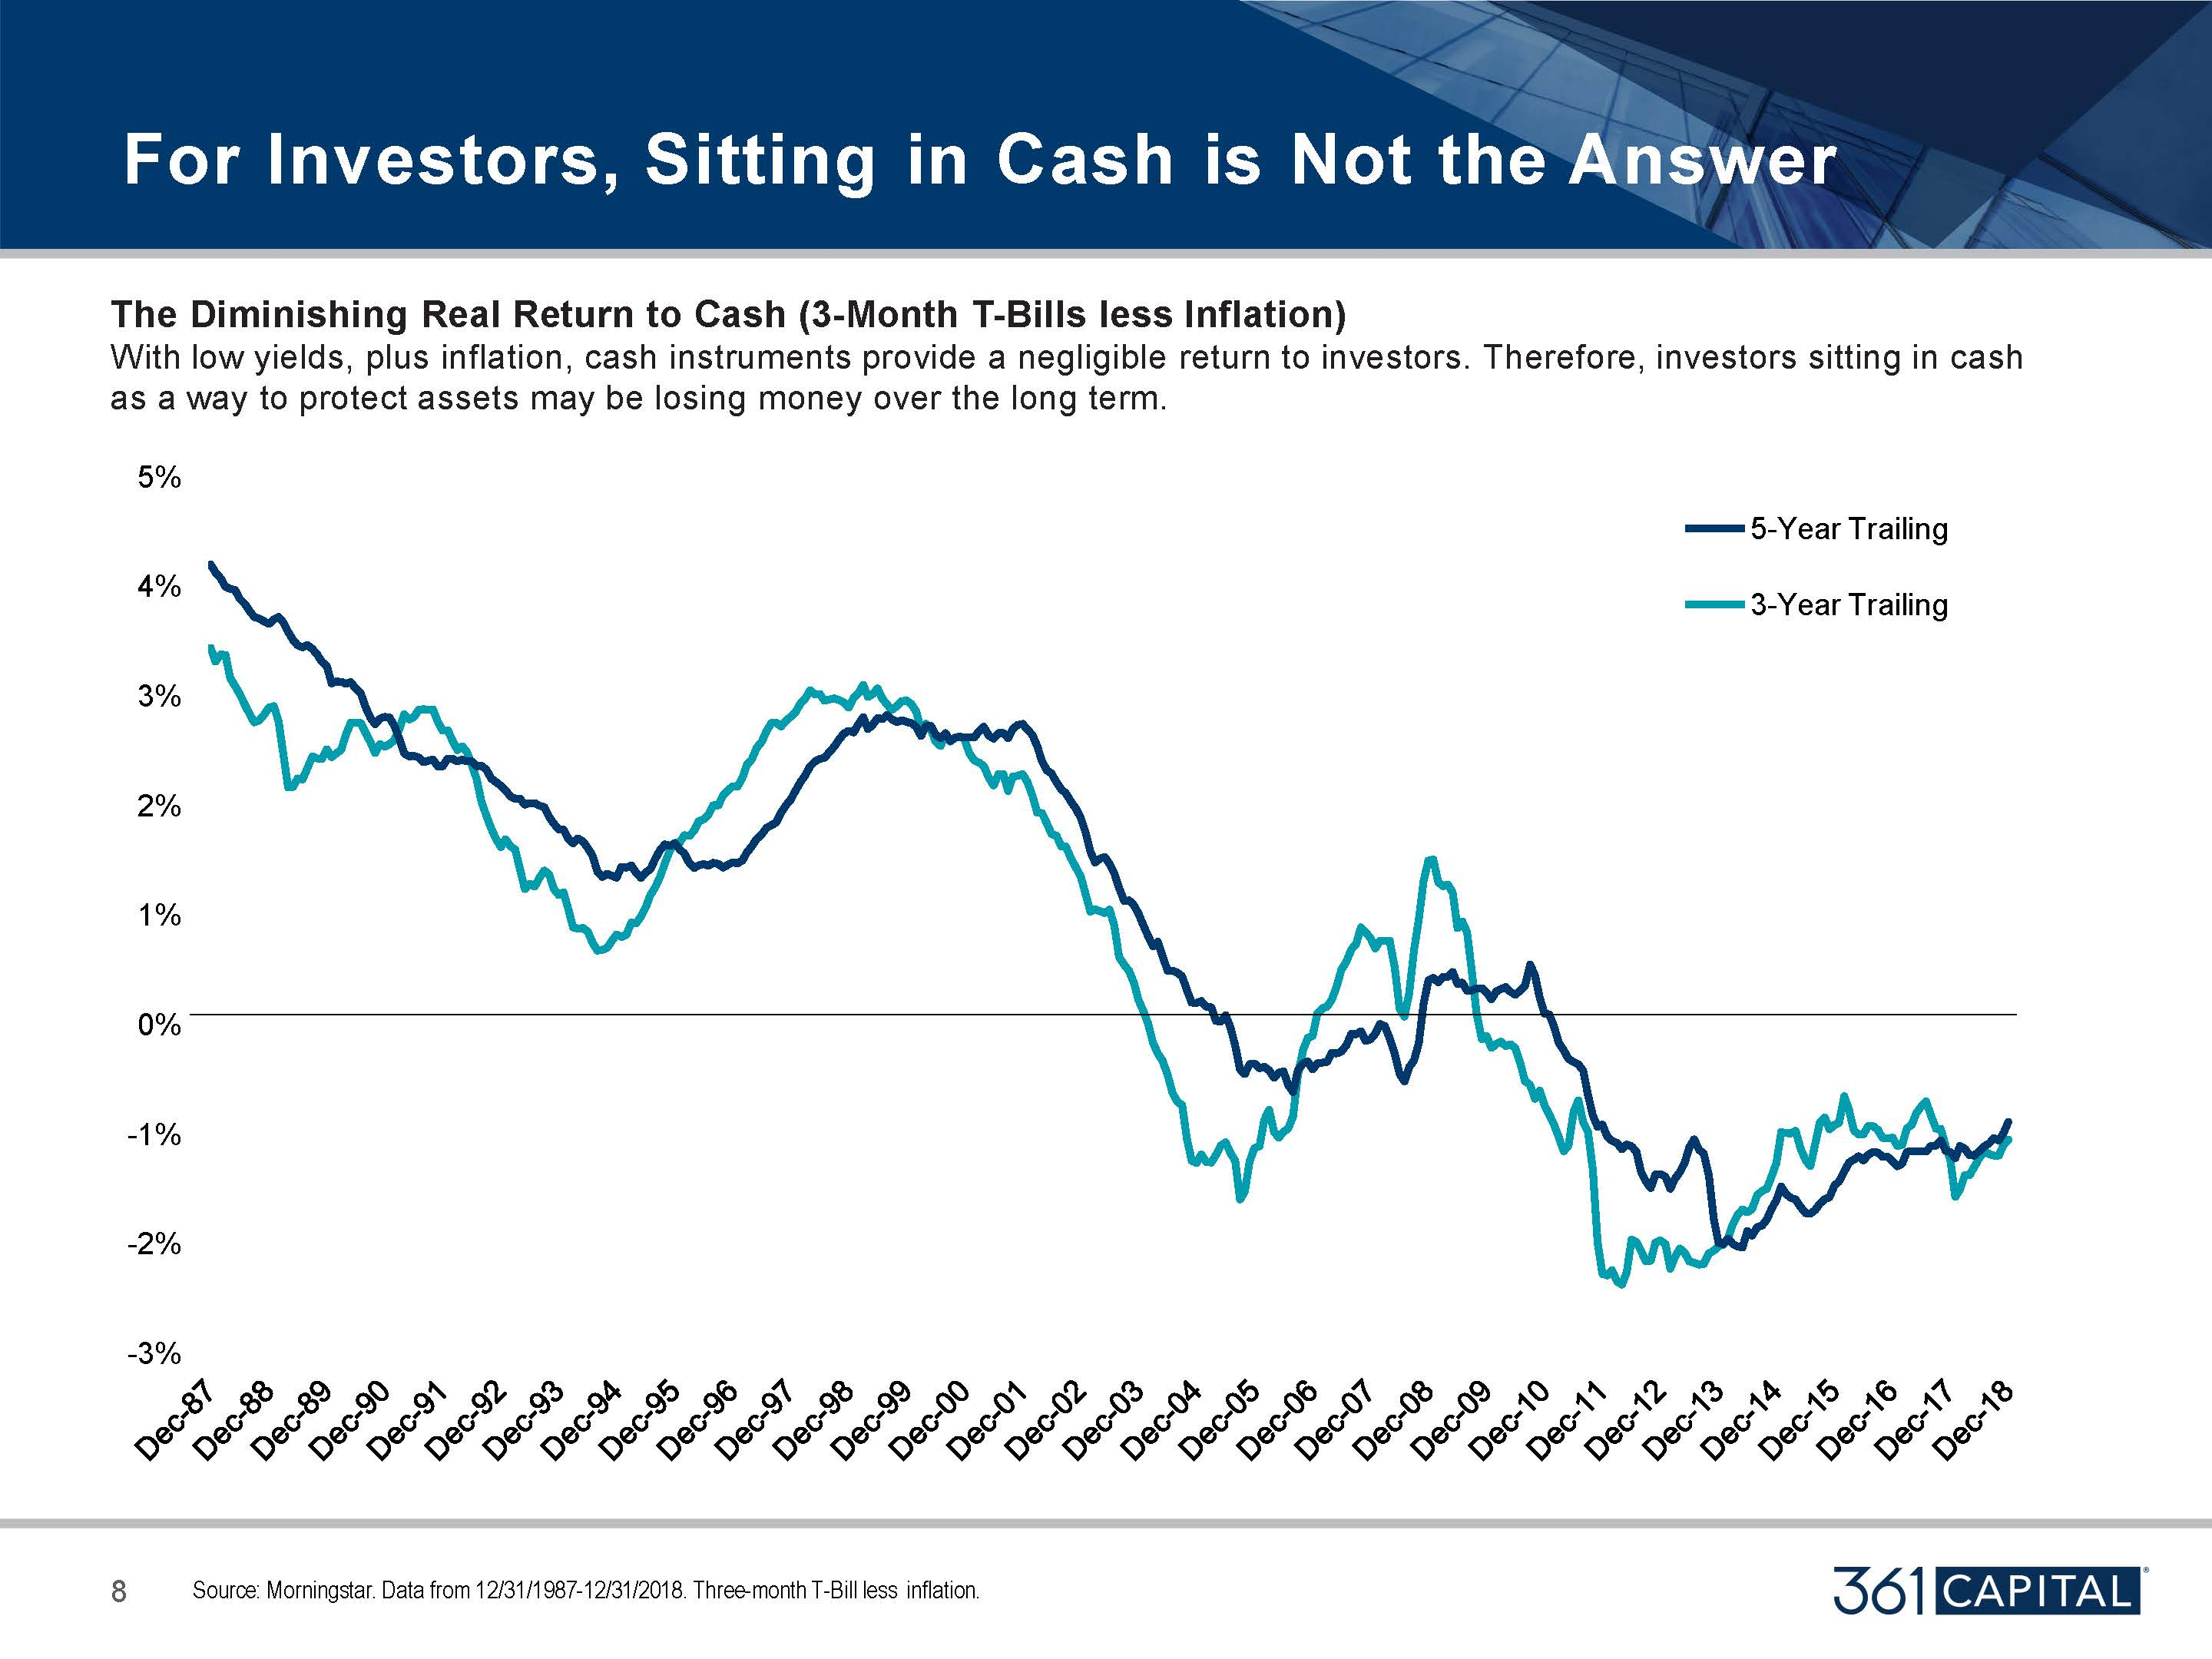 The Diminishing real return to cash (3-Month T-Bills Inflation)